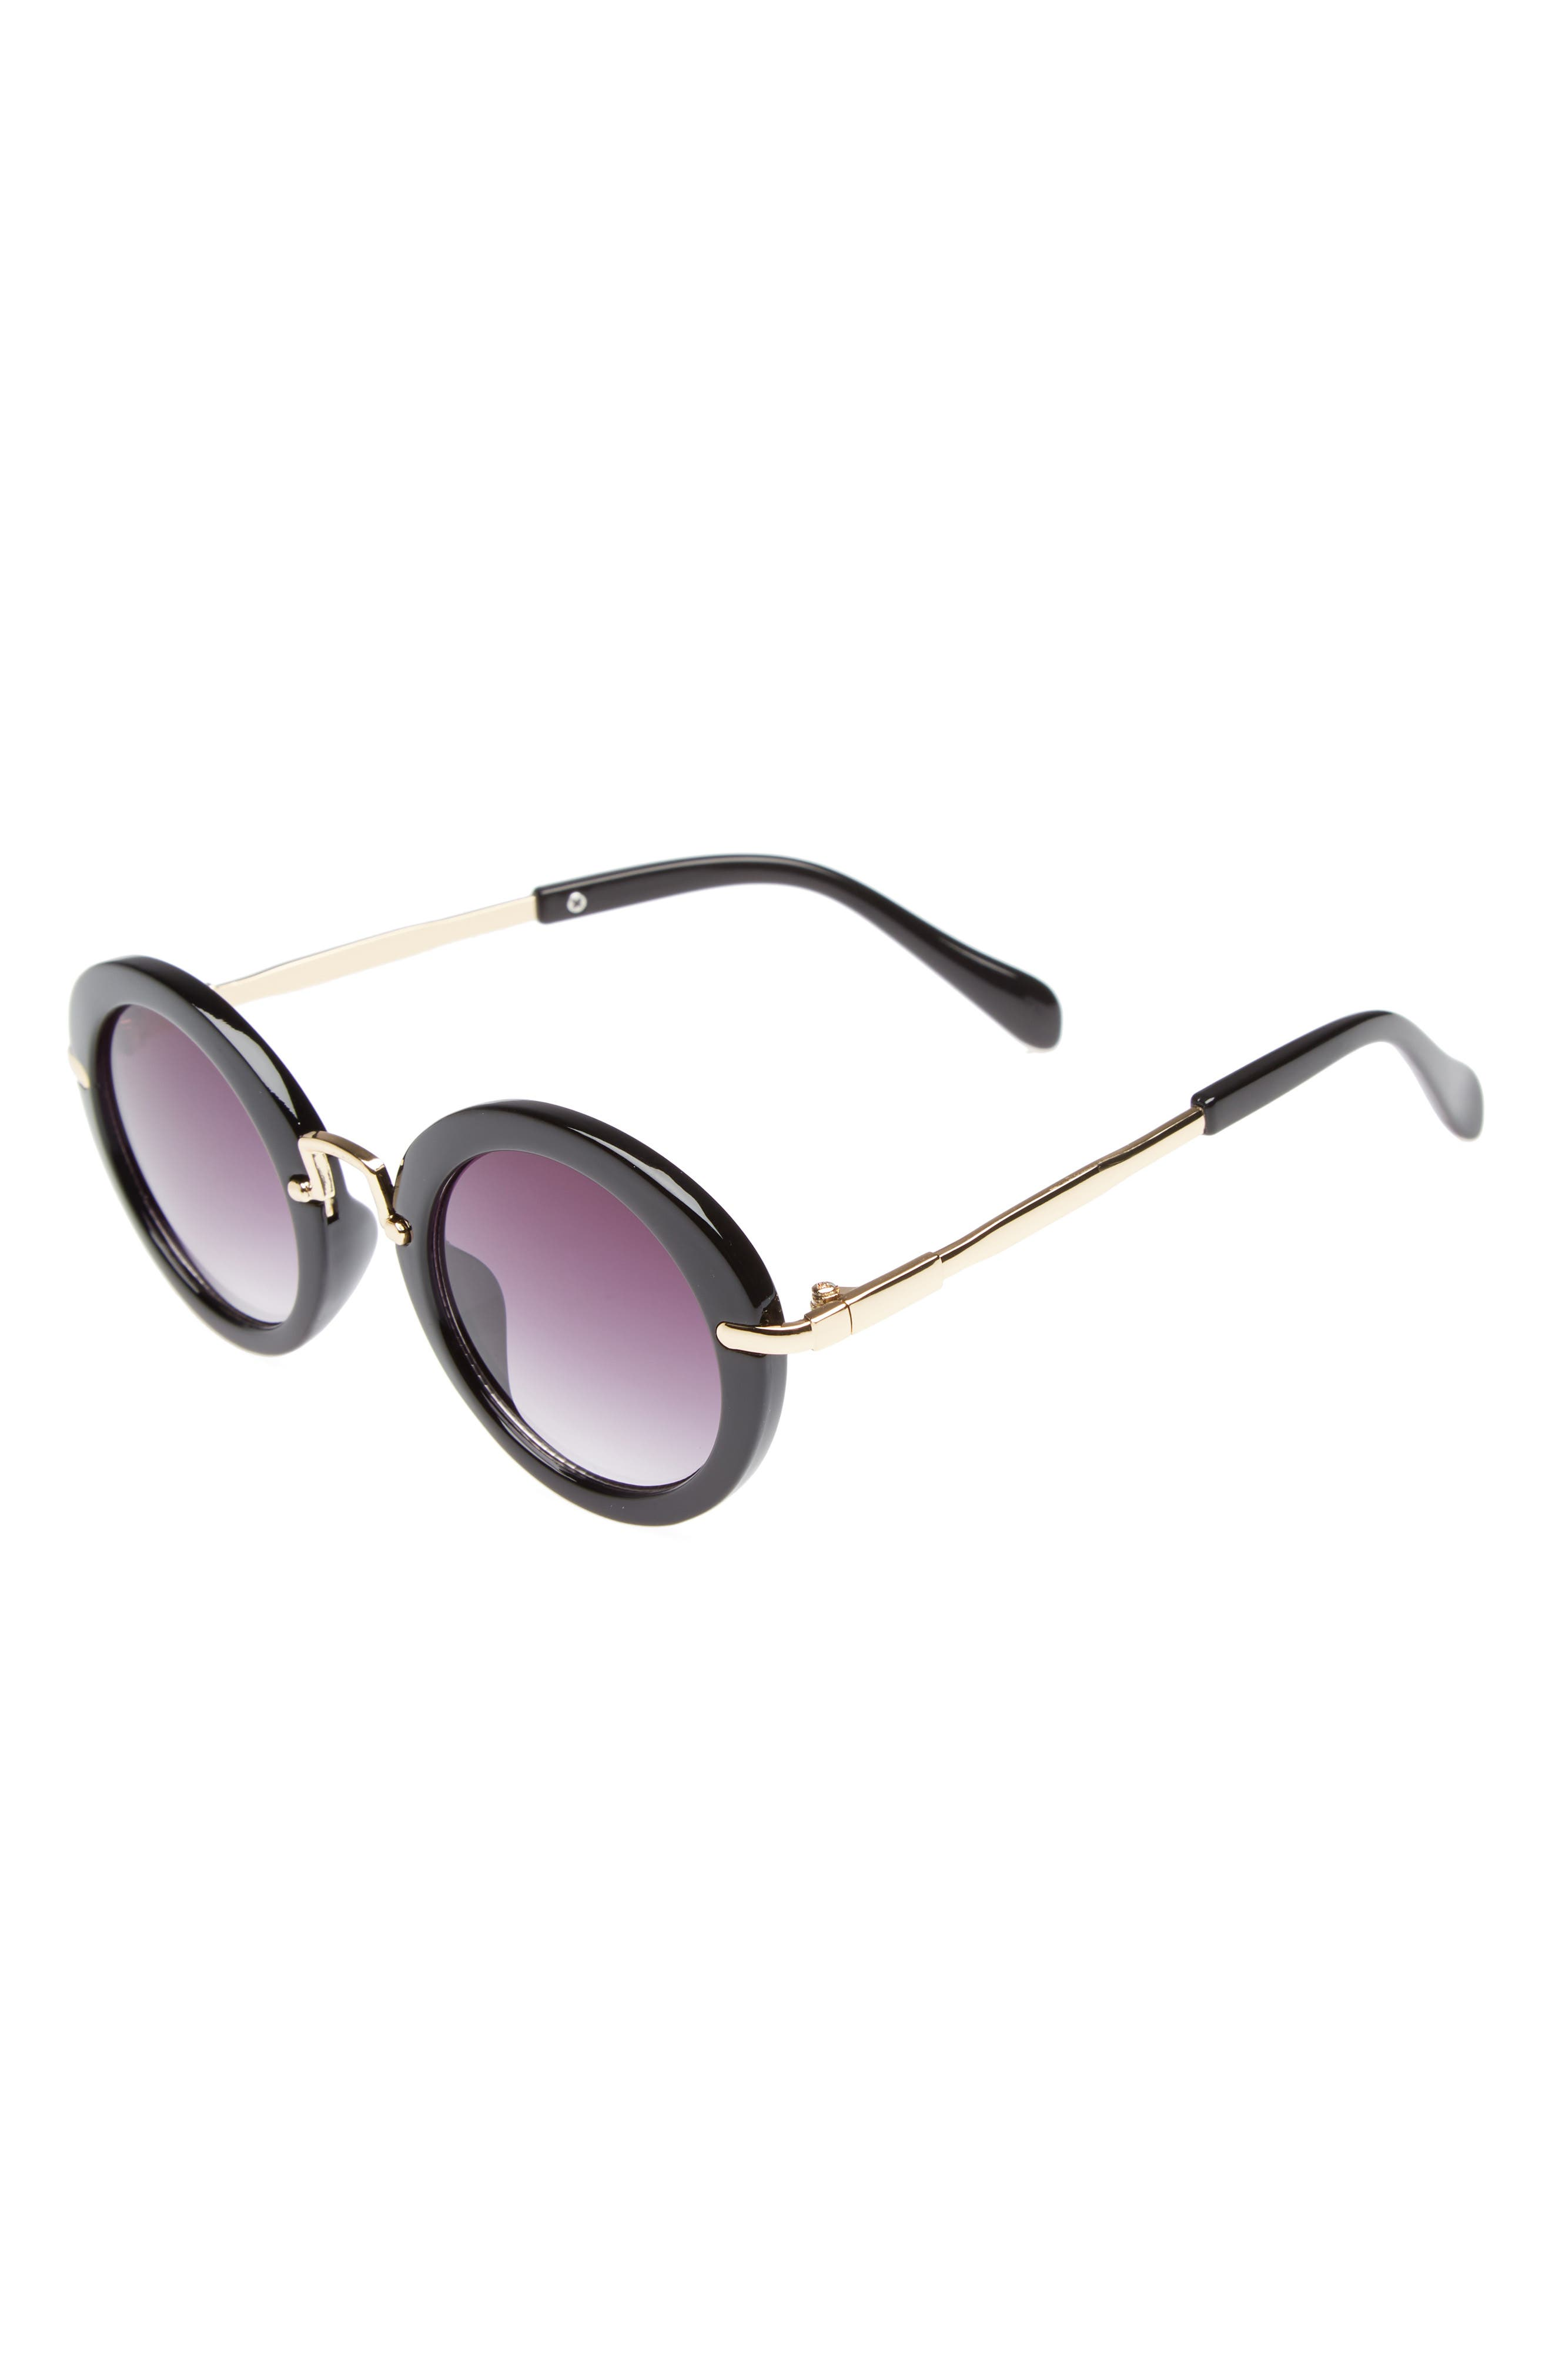 Round Sunglasses,                             Main thumbnail 1, color,                             Black/ Gold